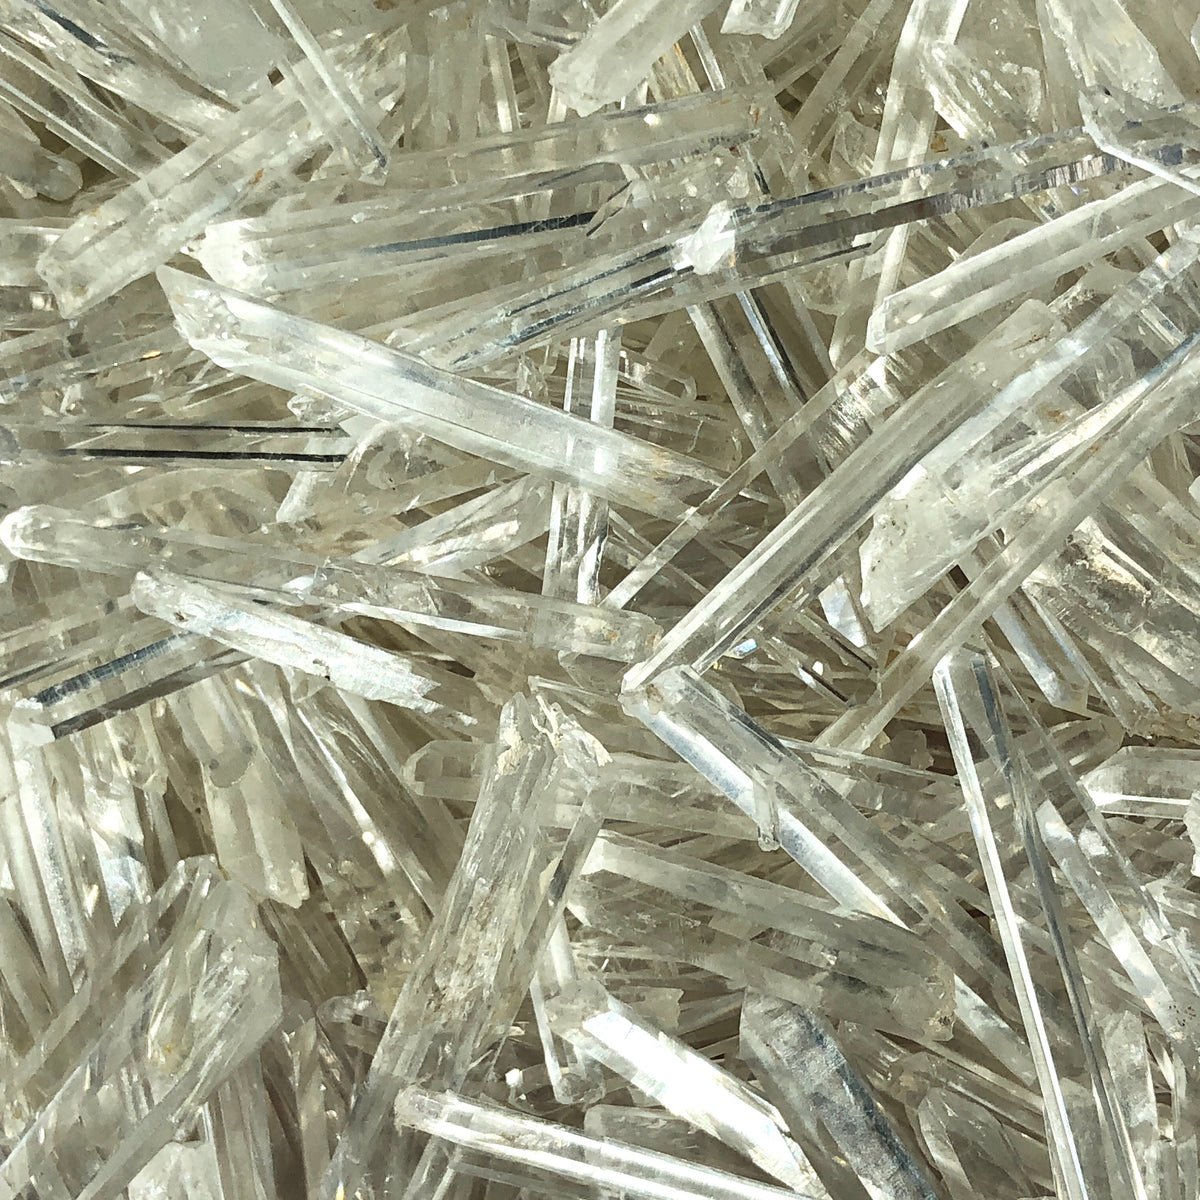 tiny quartz needles